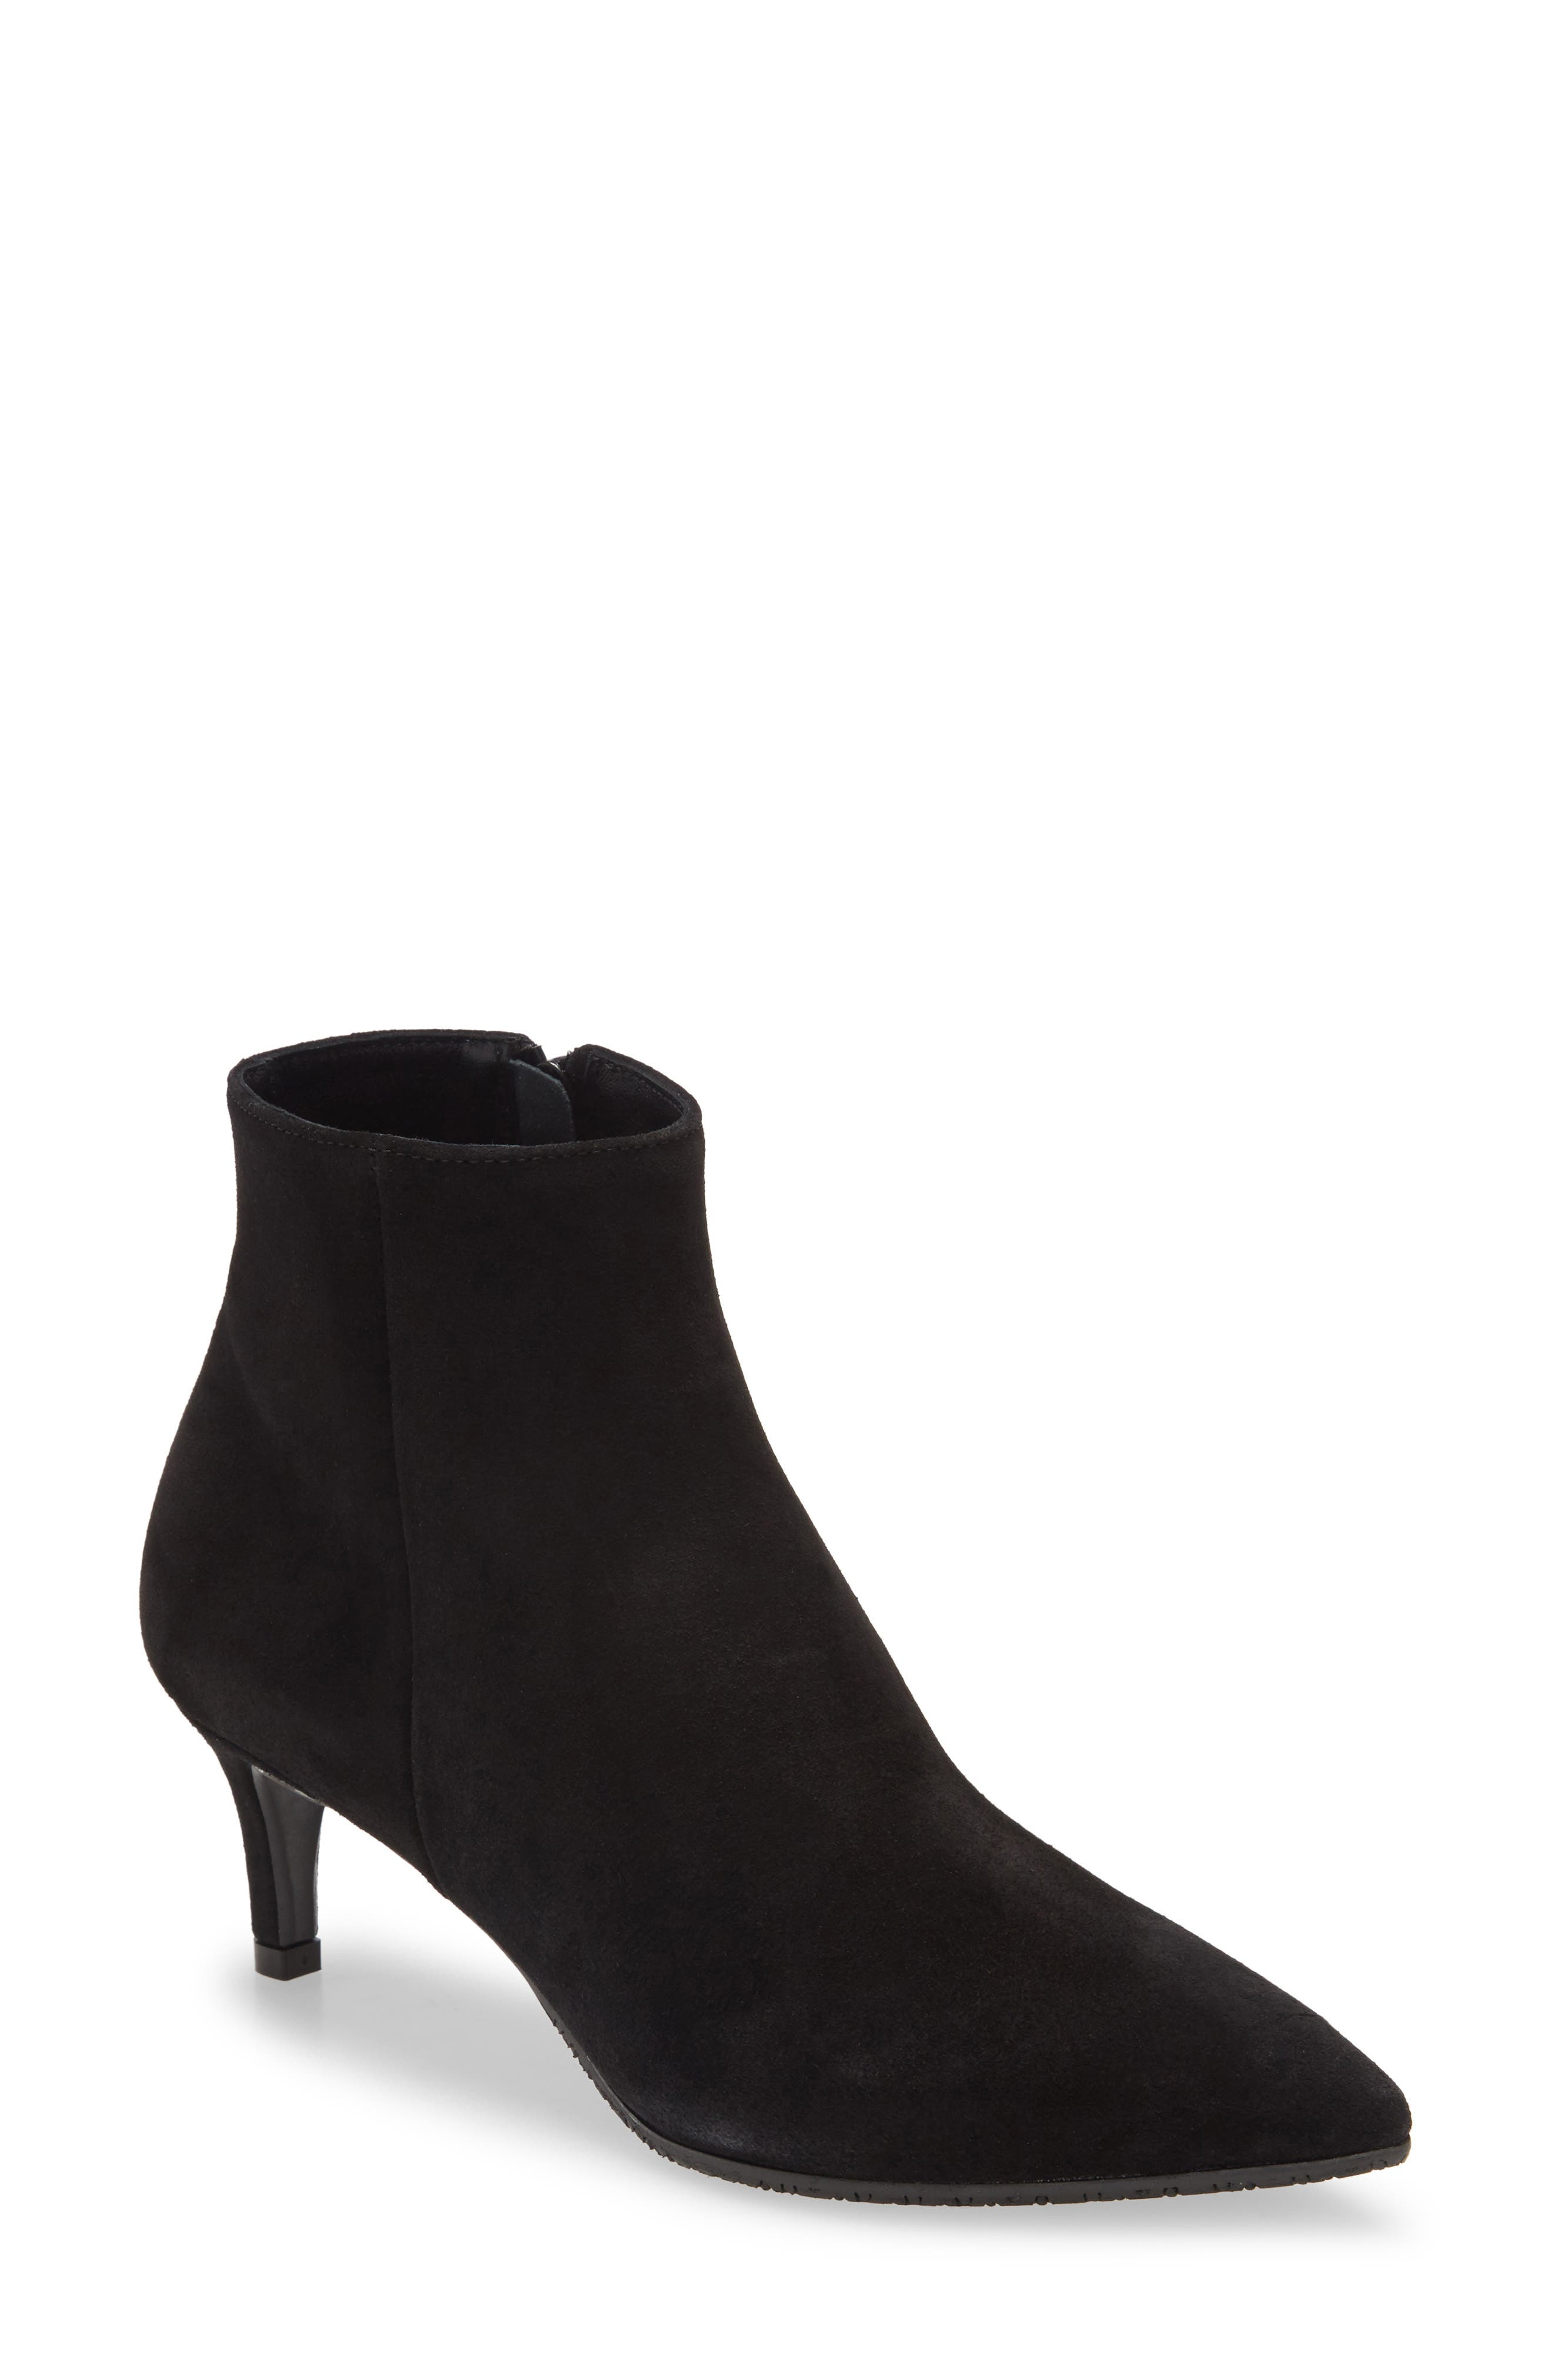 A kitten heel brings sophisticated height to this pointed-toe bootie with a flexible sole and light padding for all-day comfort and adaptability. Style Name: Cordani Garvie Pointed Toe Bootie (Women). Style Number: 6102544. Available in stores.